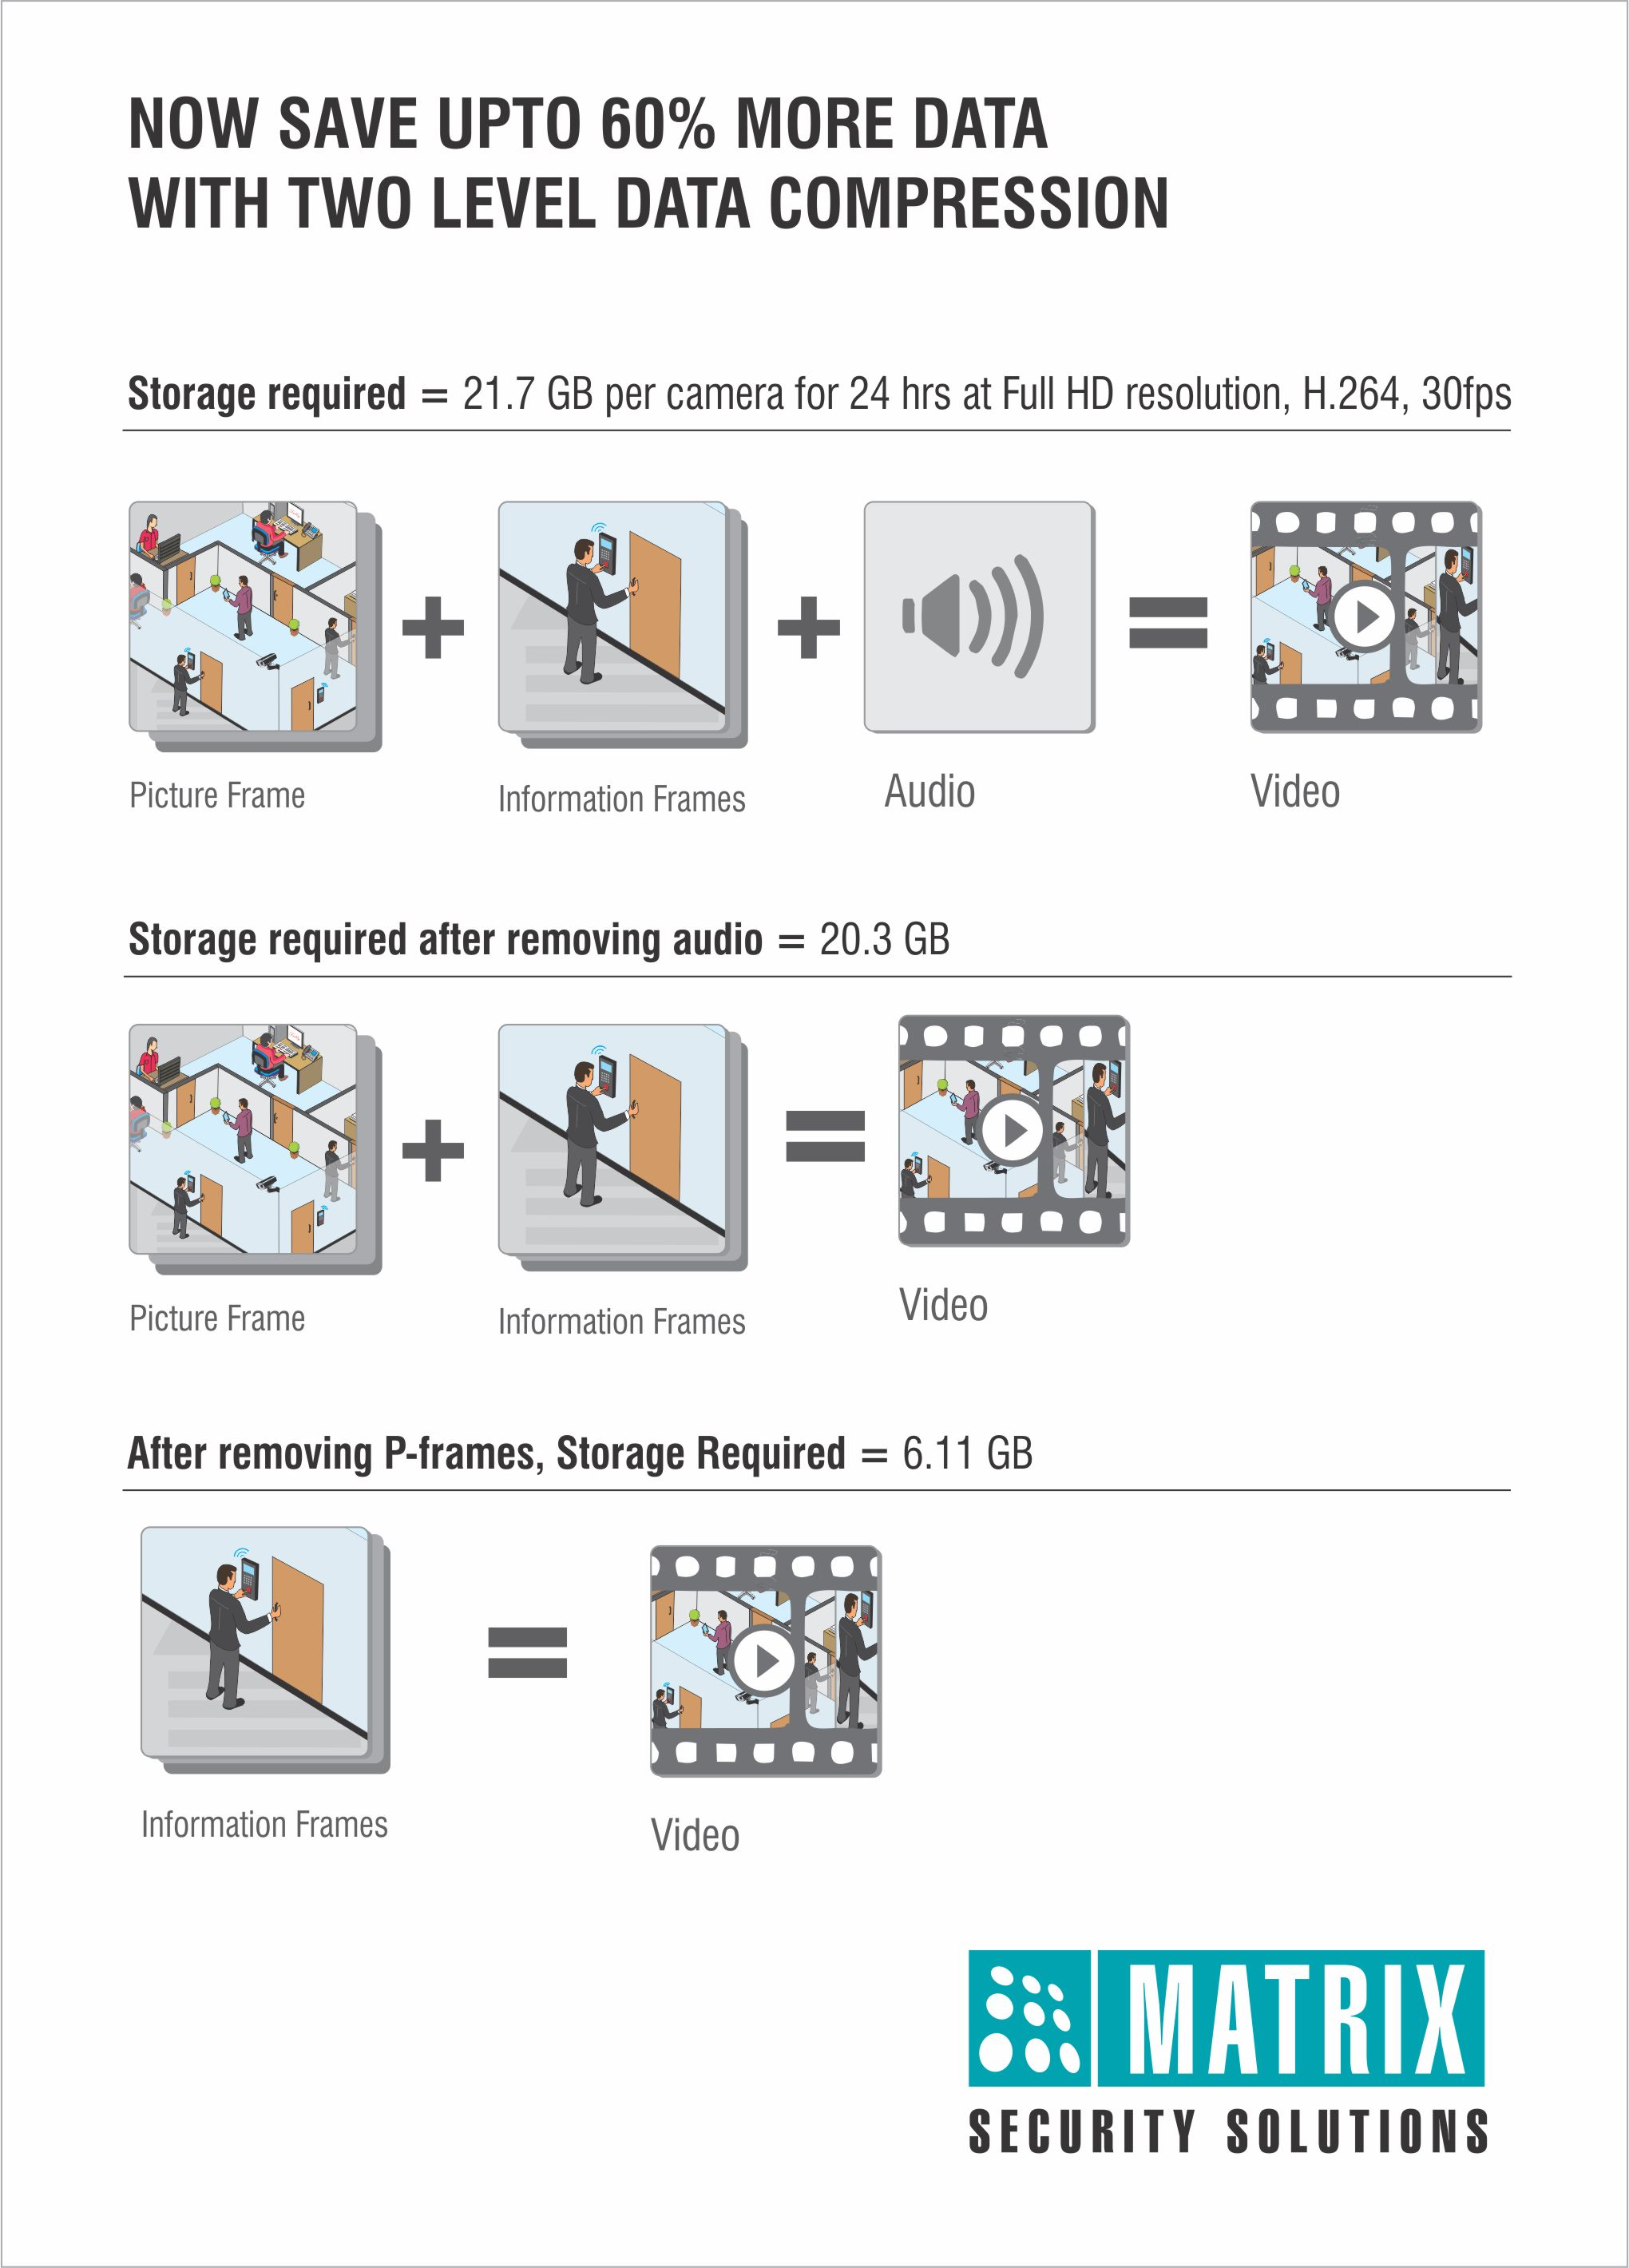 Network Video Recorder 8 16 24 32 Channel Nvr Security System Reverse Buzzer Wiring Diagram Adaptive Recording